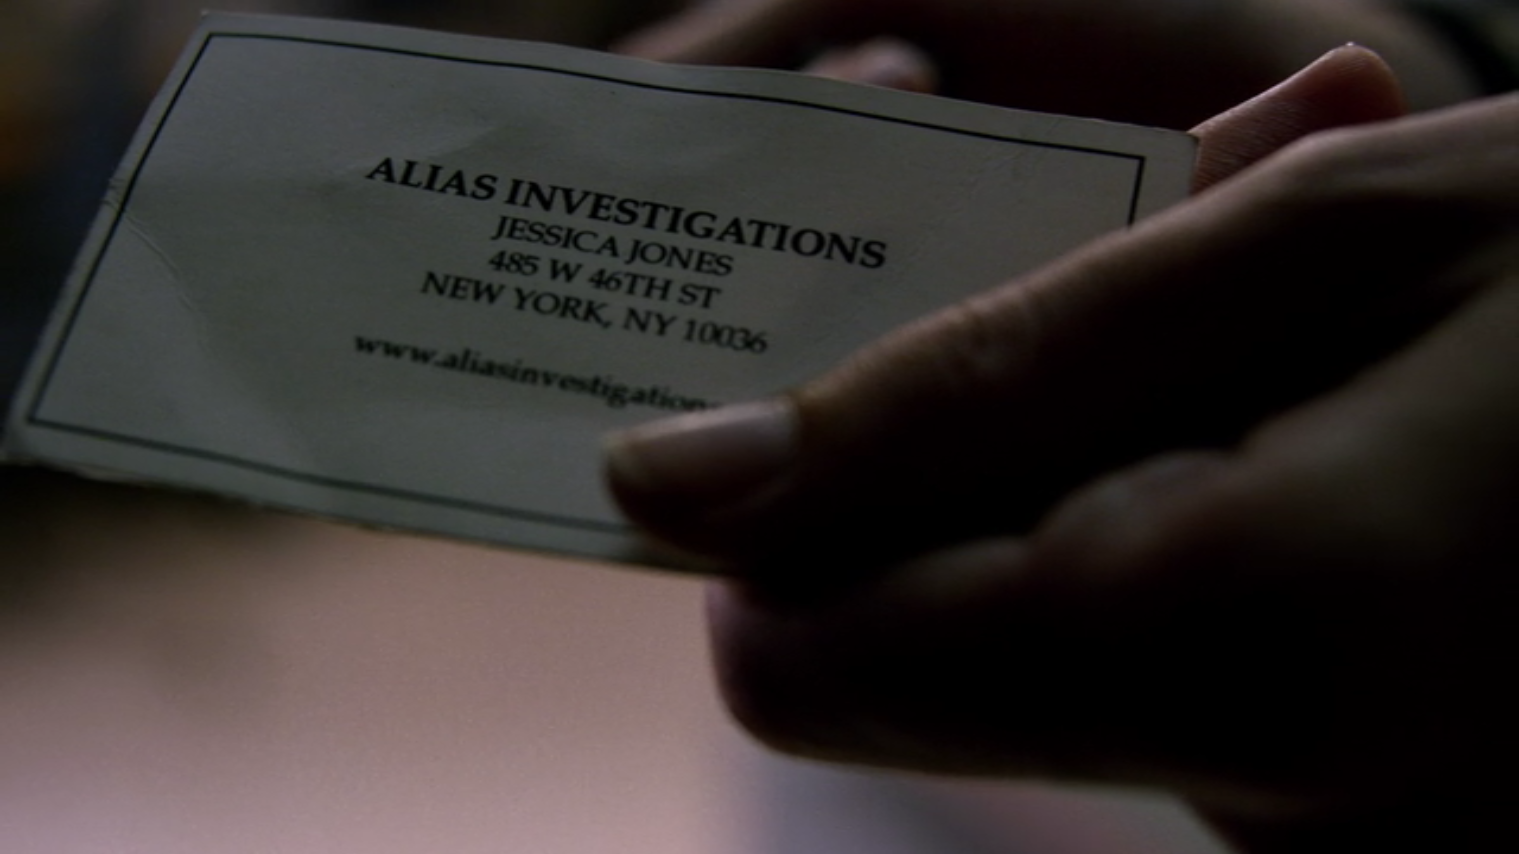 Gallery business cards in television jessica jones alias invesigations reheart Images